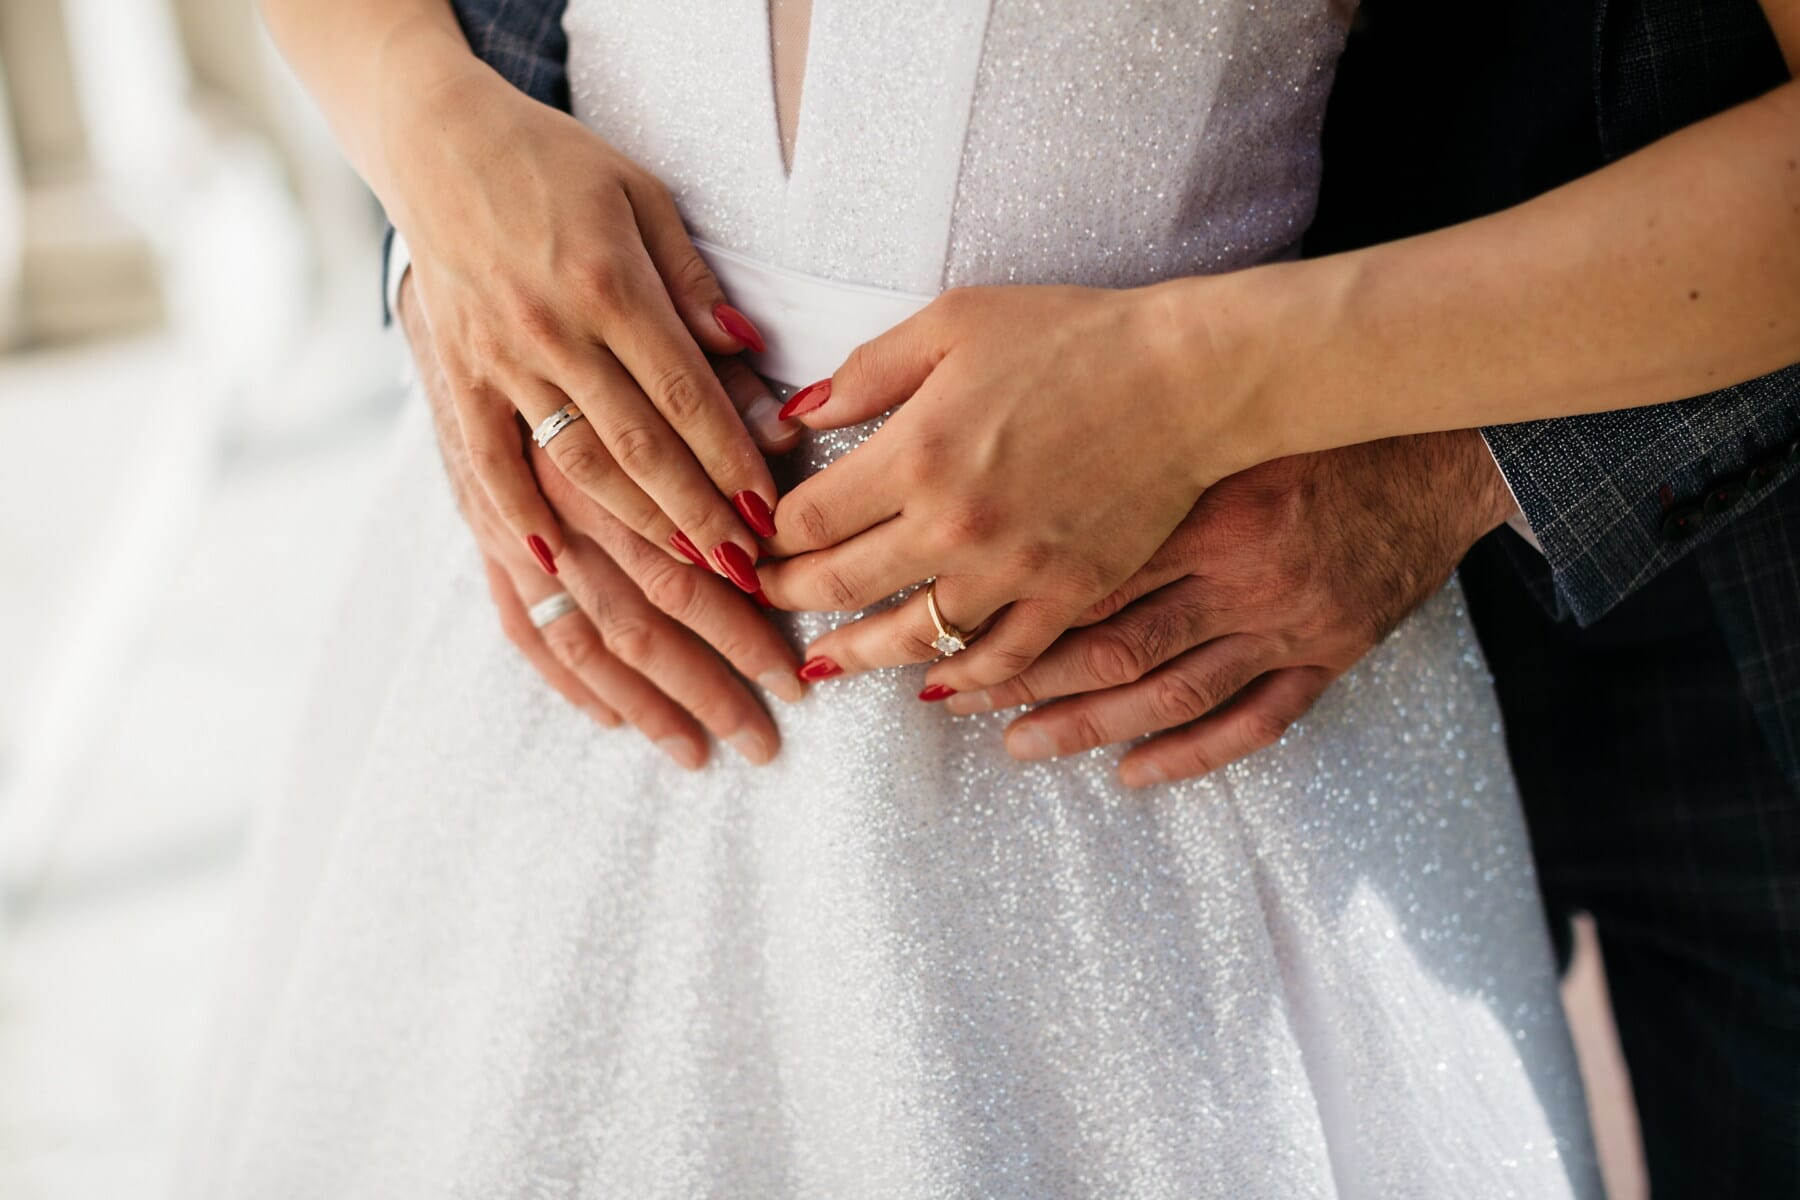 wedding dress, wedding ring, newlyweds, holding hands, finger, touch, nail polish, rings, woman, man